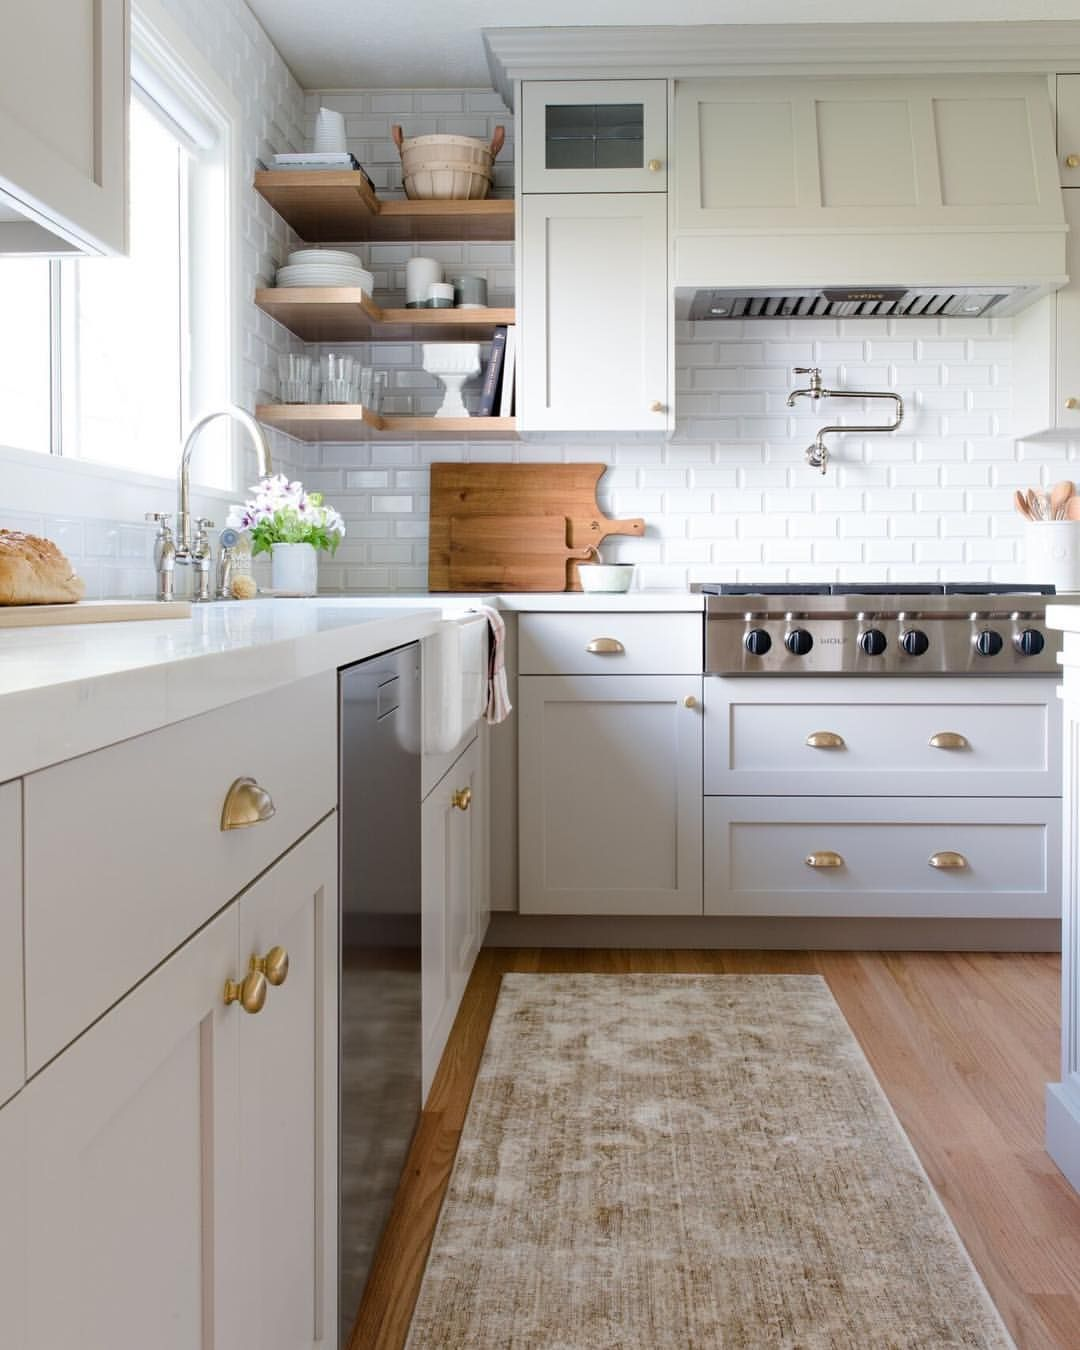 Kensington Kitchen Cabinets: Pin By Noelle Abramson On Home Renovation